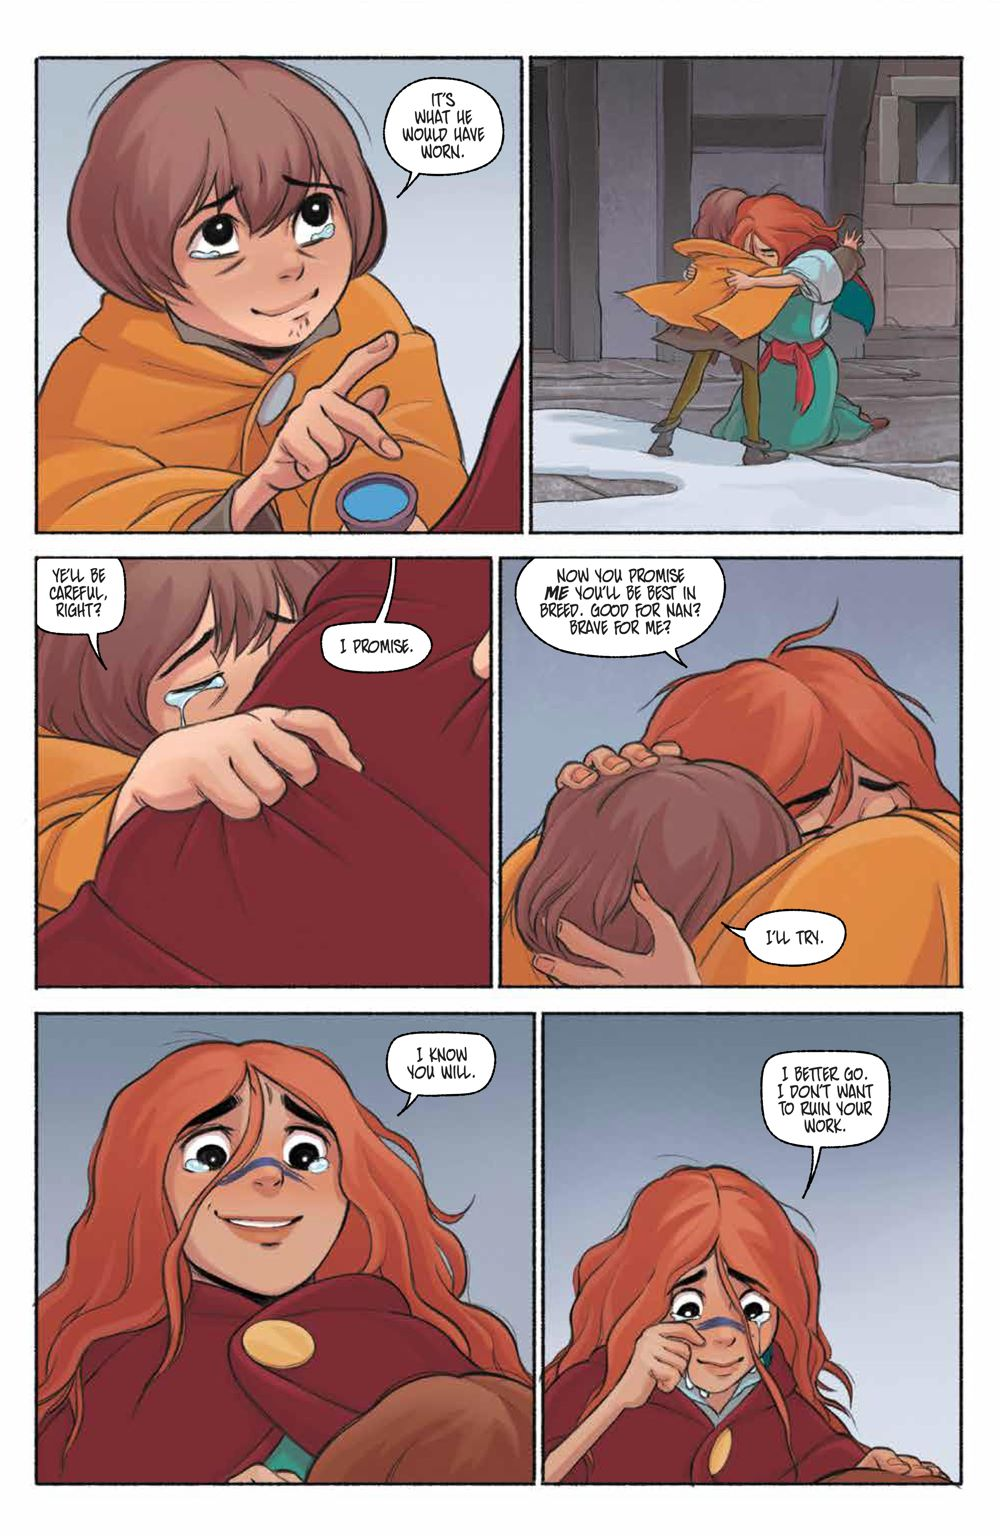 LastWitch_003_PRESS_7 ComicList Previews: THE LAST WITCH #3 (OF 5)